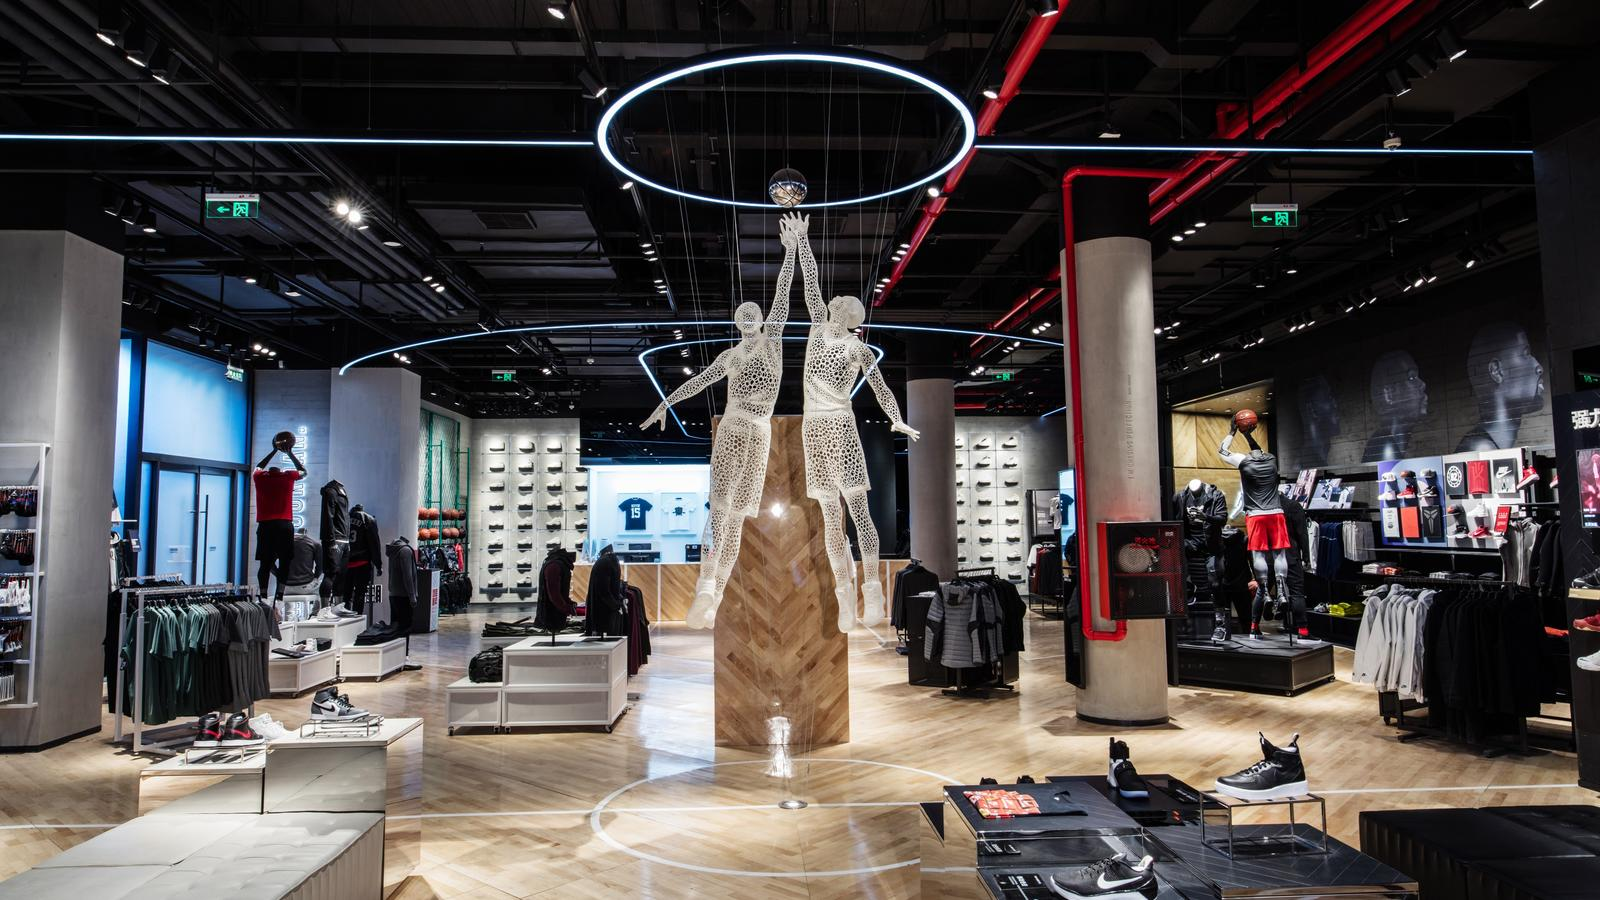 9bfa8e6a592 First Look: Inside the Nike & Jordan Basketball Experience Store in ...